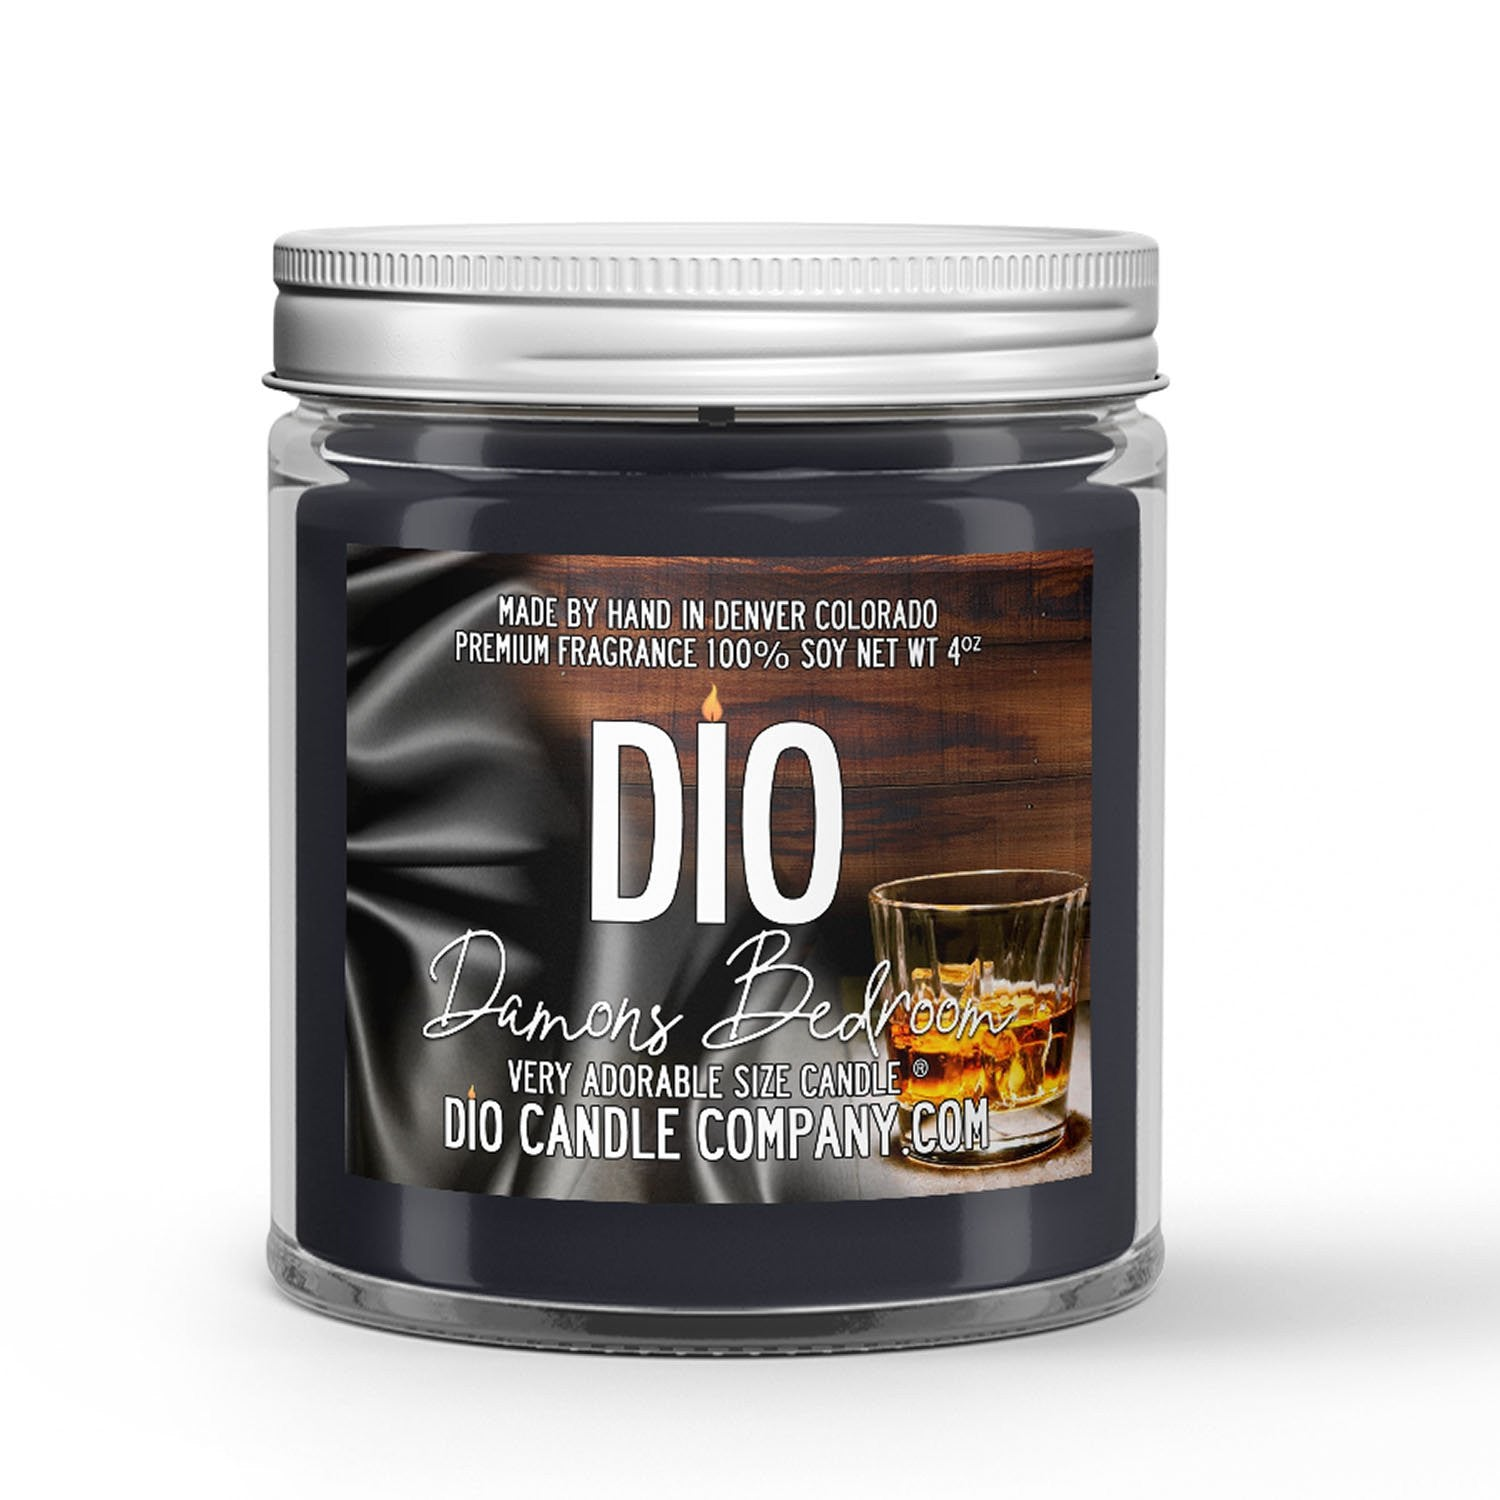 Damon's Bedroom Candle Whiskey - Woods - Cologne Scented - Dio Candle Company